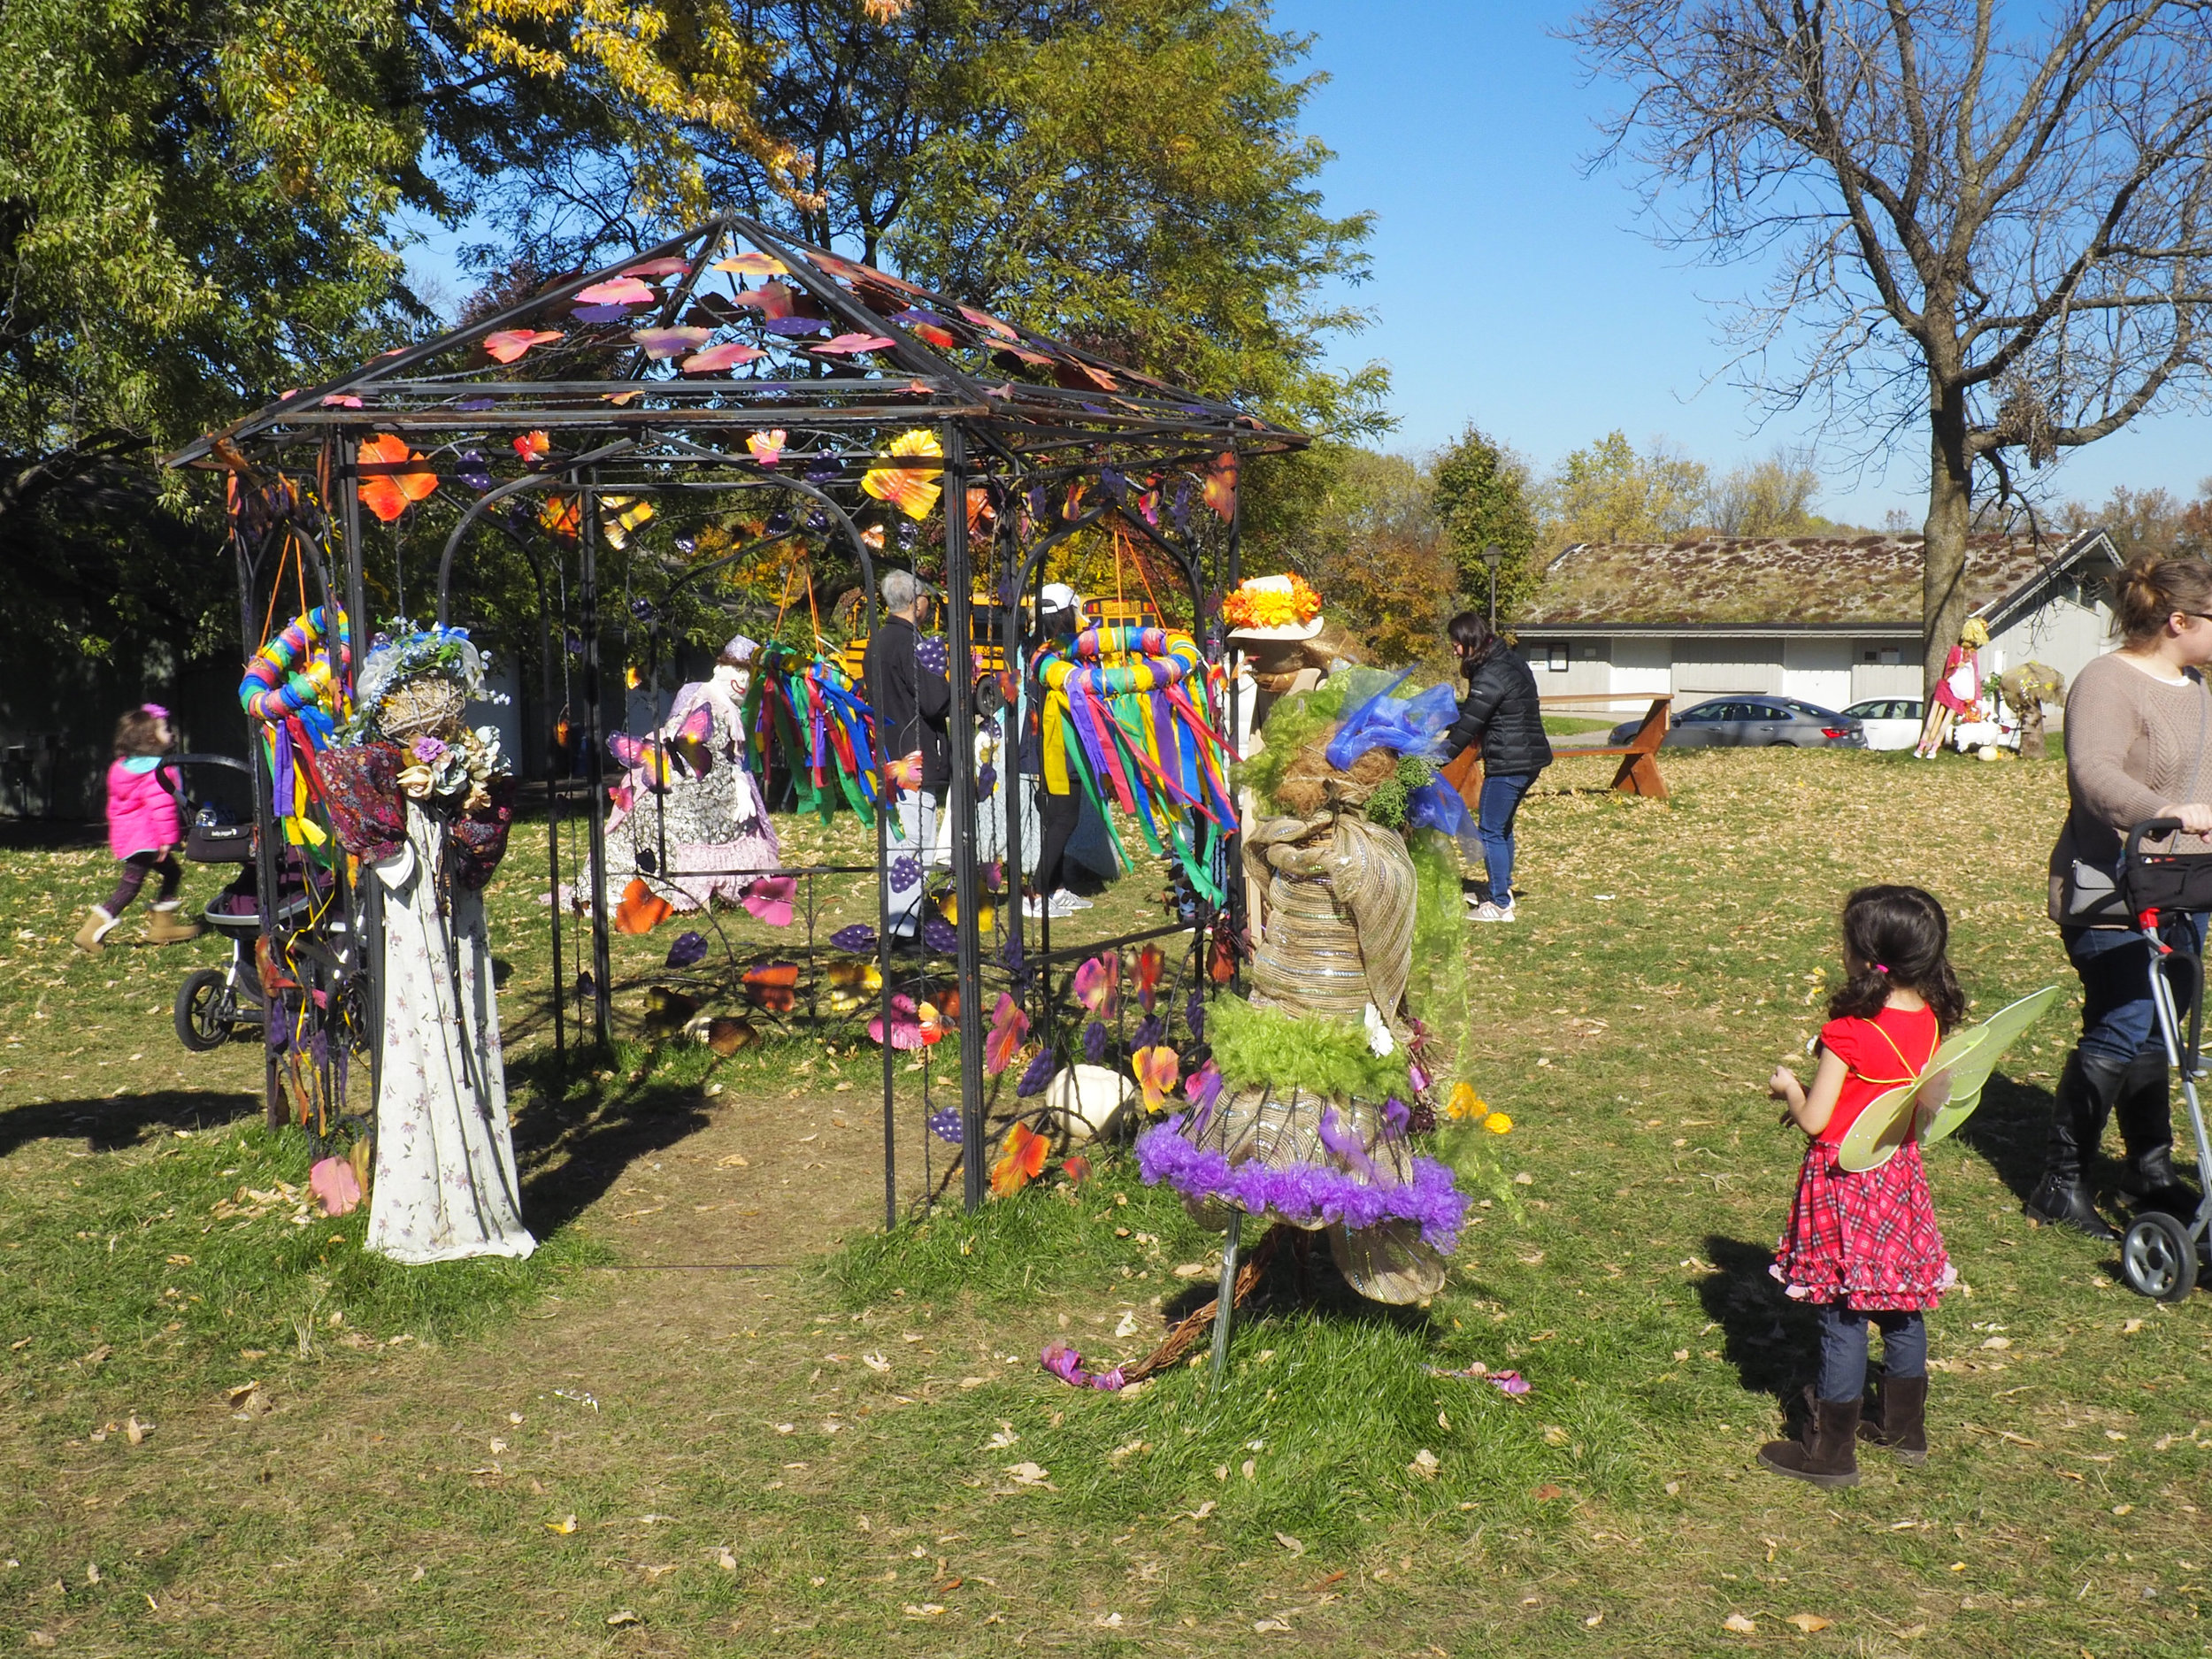 cindi_arboretum_scarecrow_spiritedtable_photo4.jpg